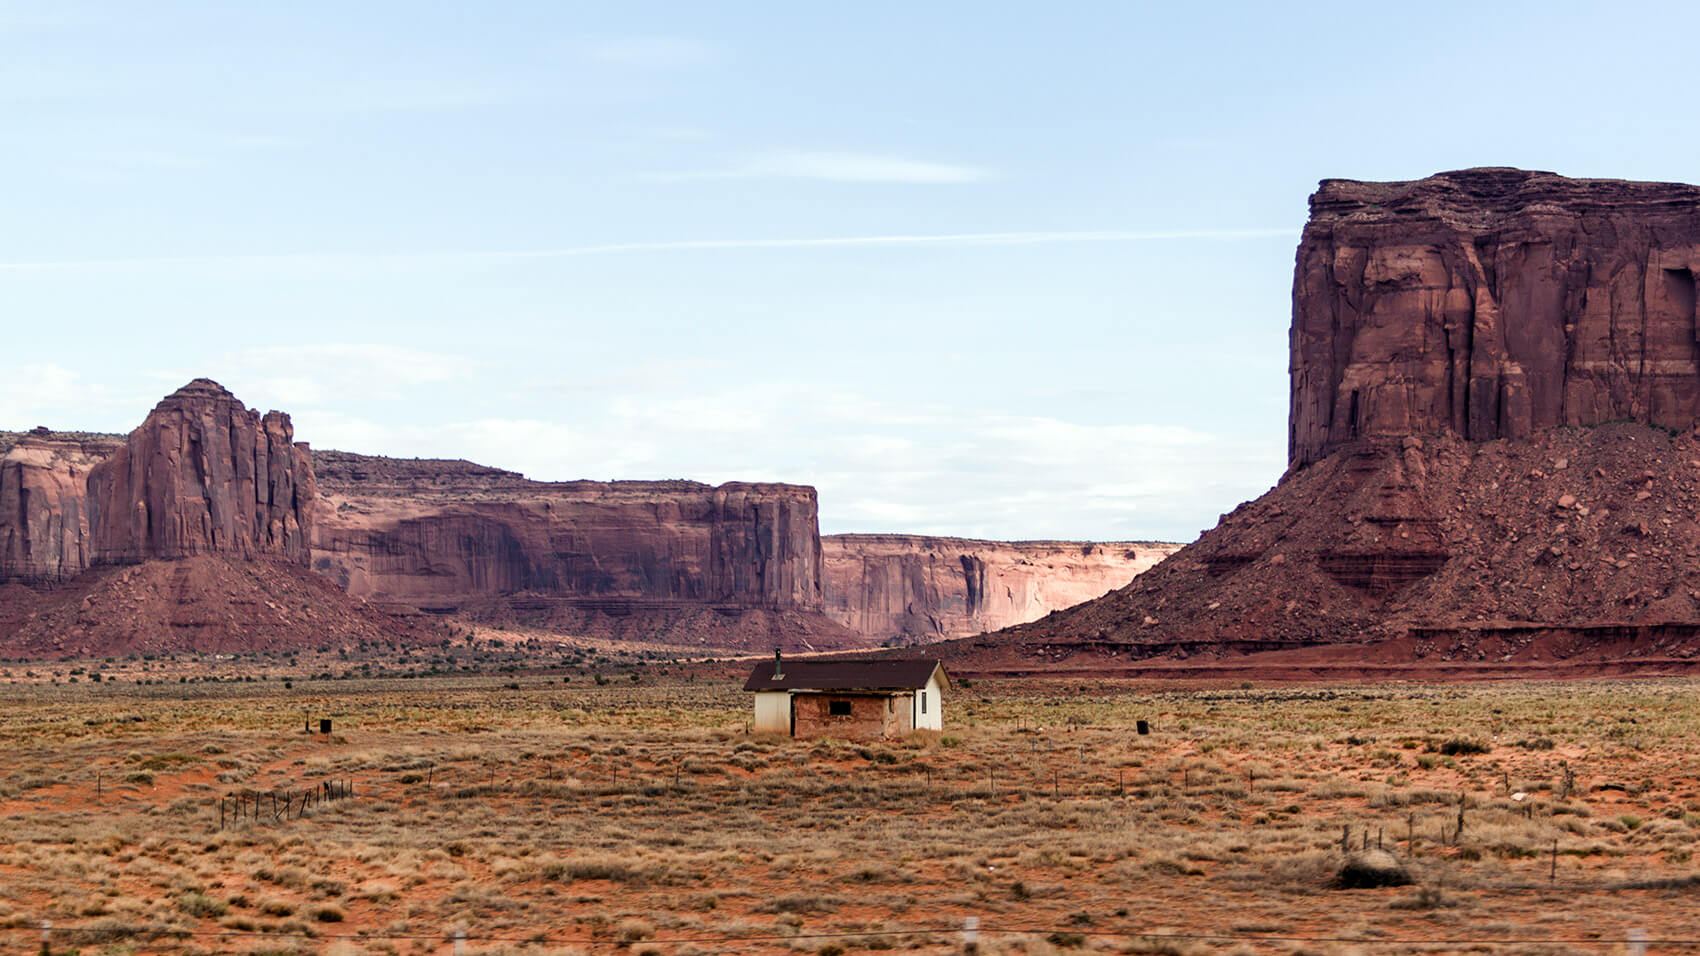 A hut in Monument Valley